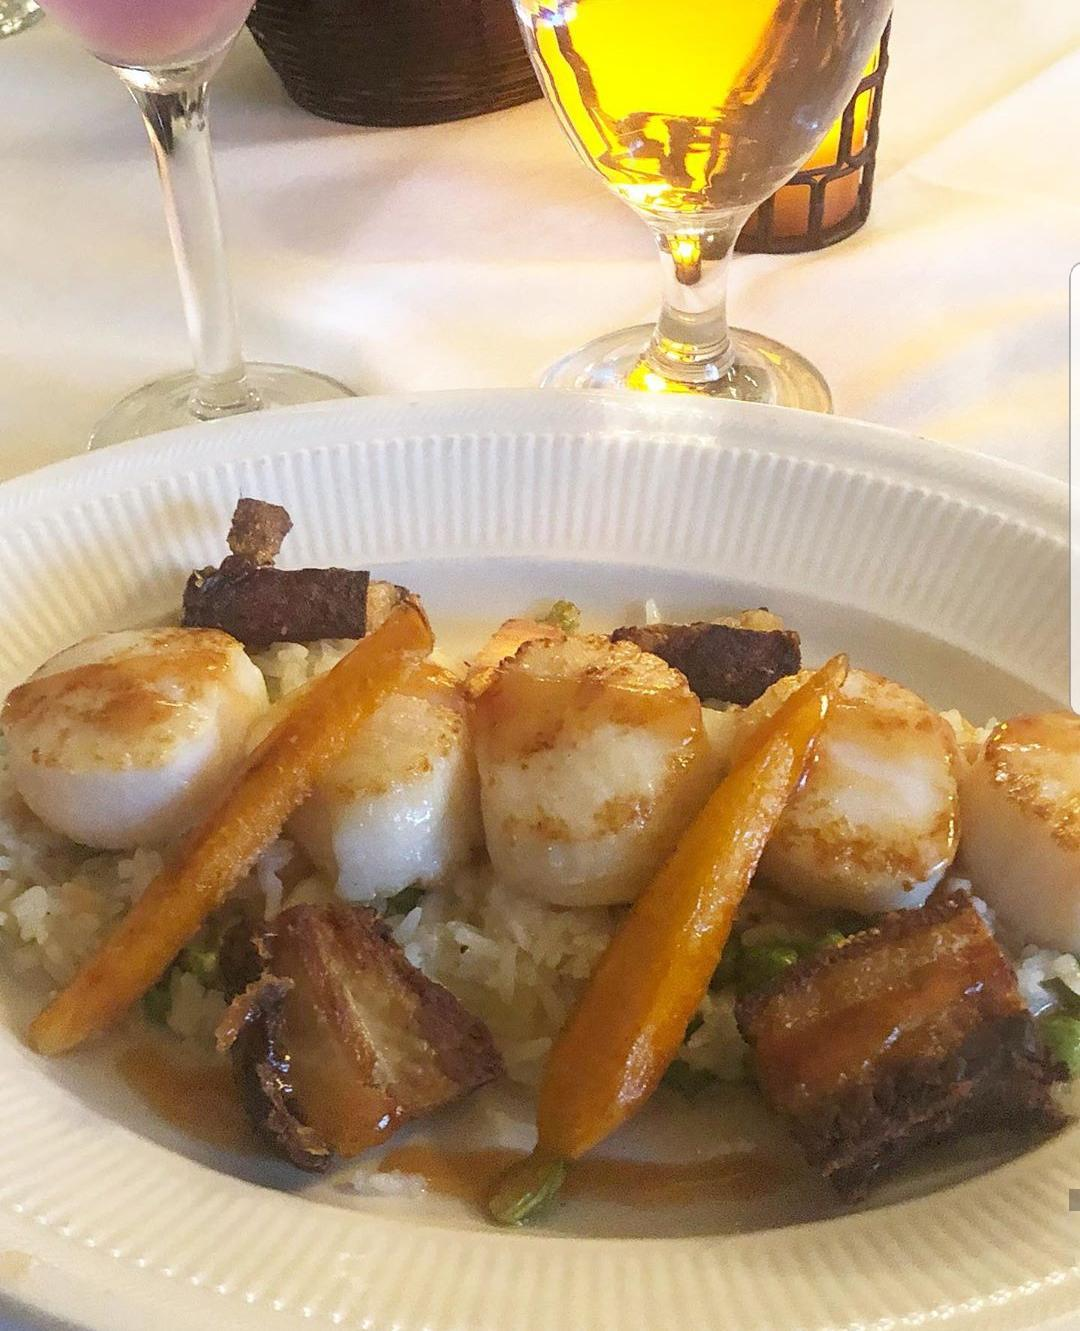 scallops over a bed of rice topped with carrots